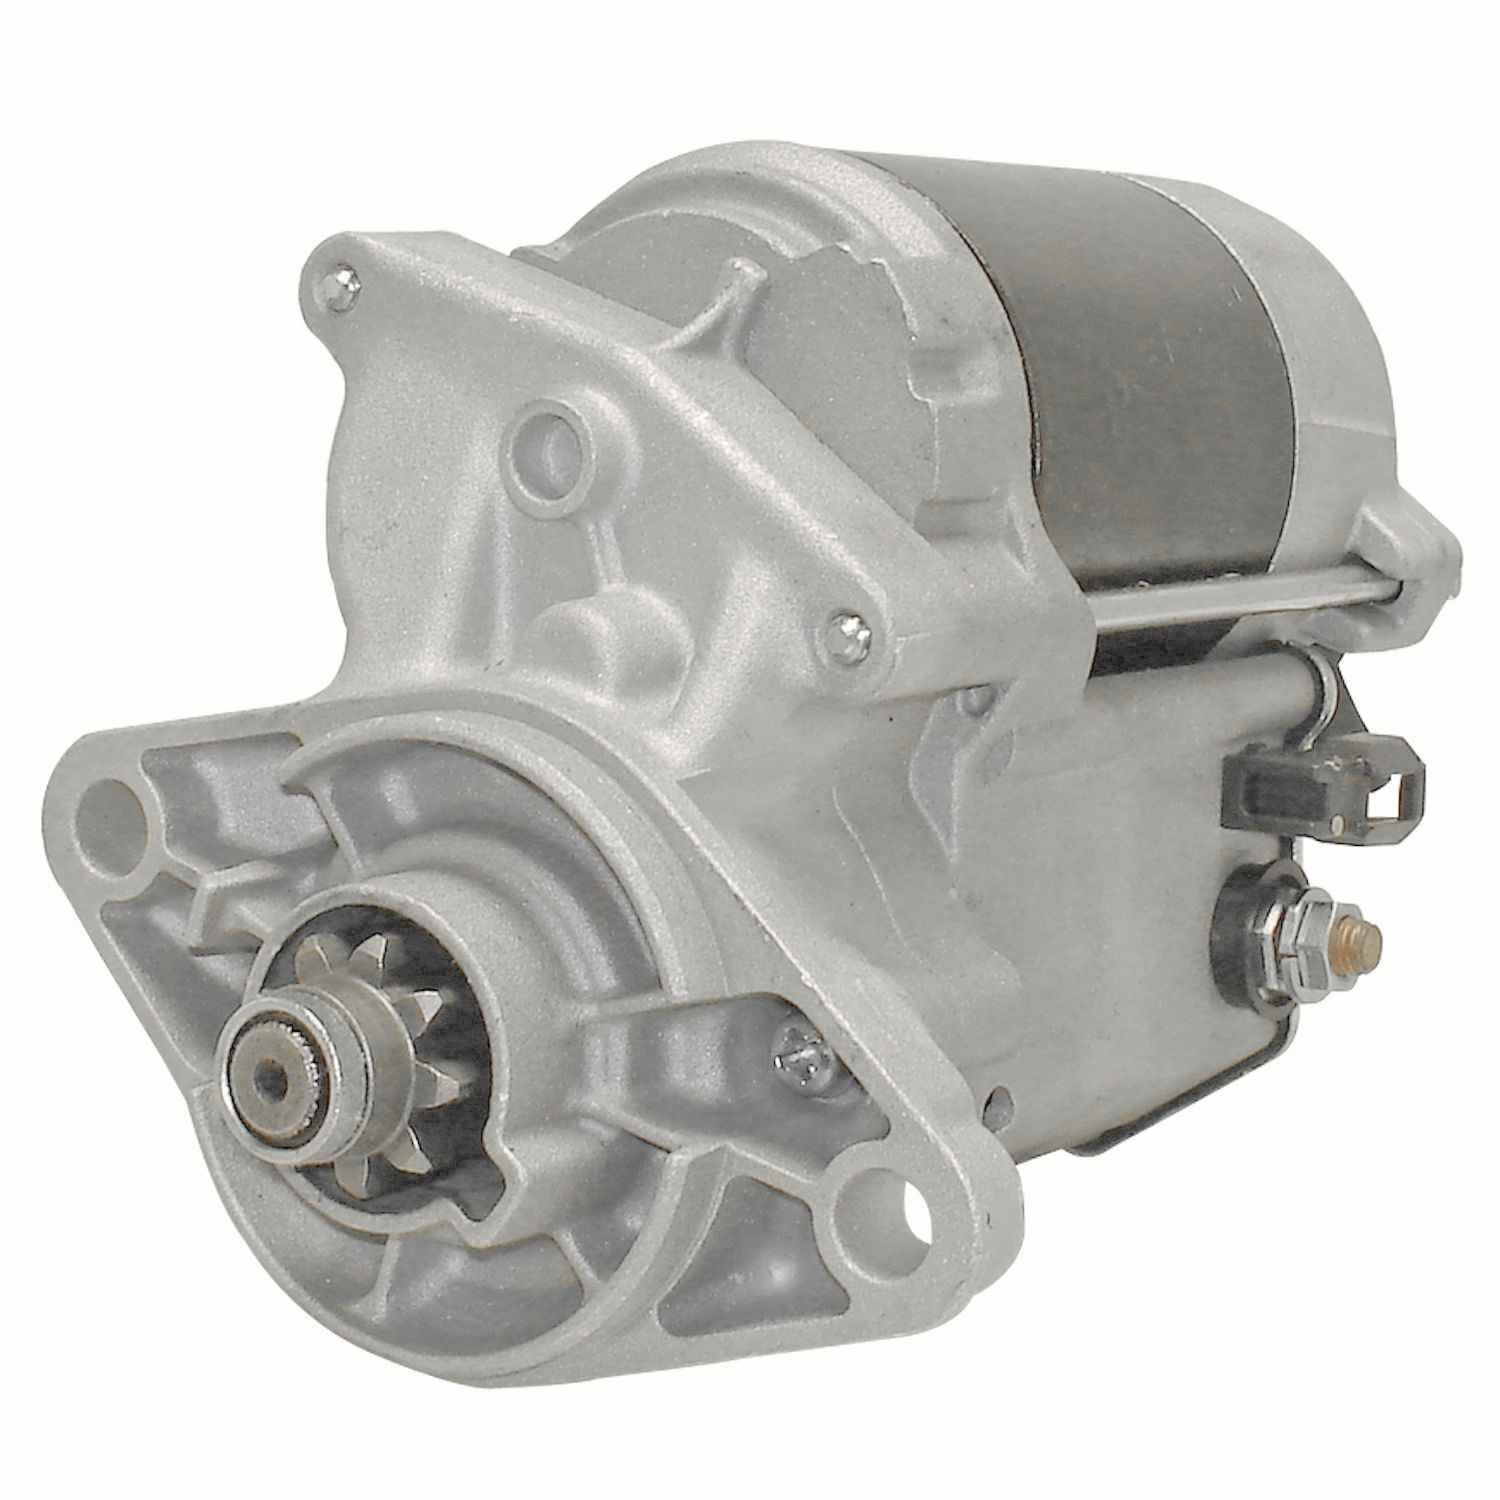 ACDELCO GOLD/PROFESSIONAL - Reman Starter Motor - DCC 336-1367